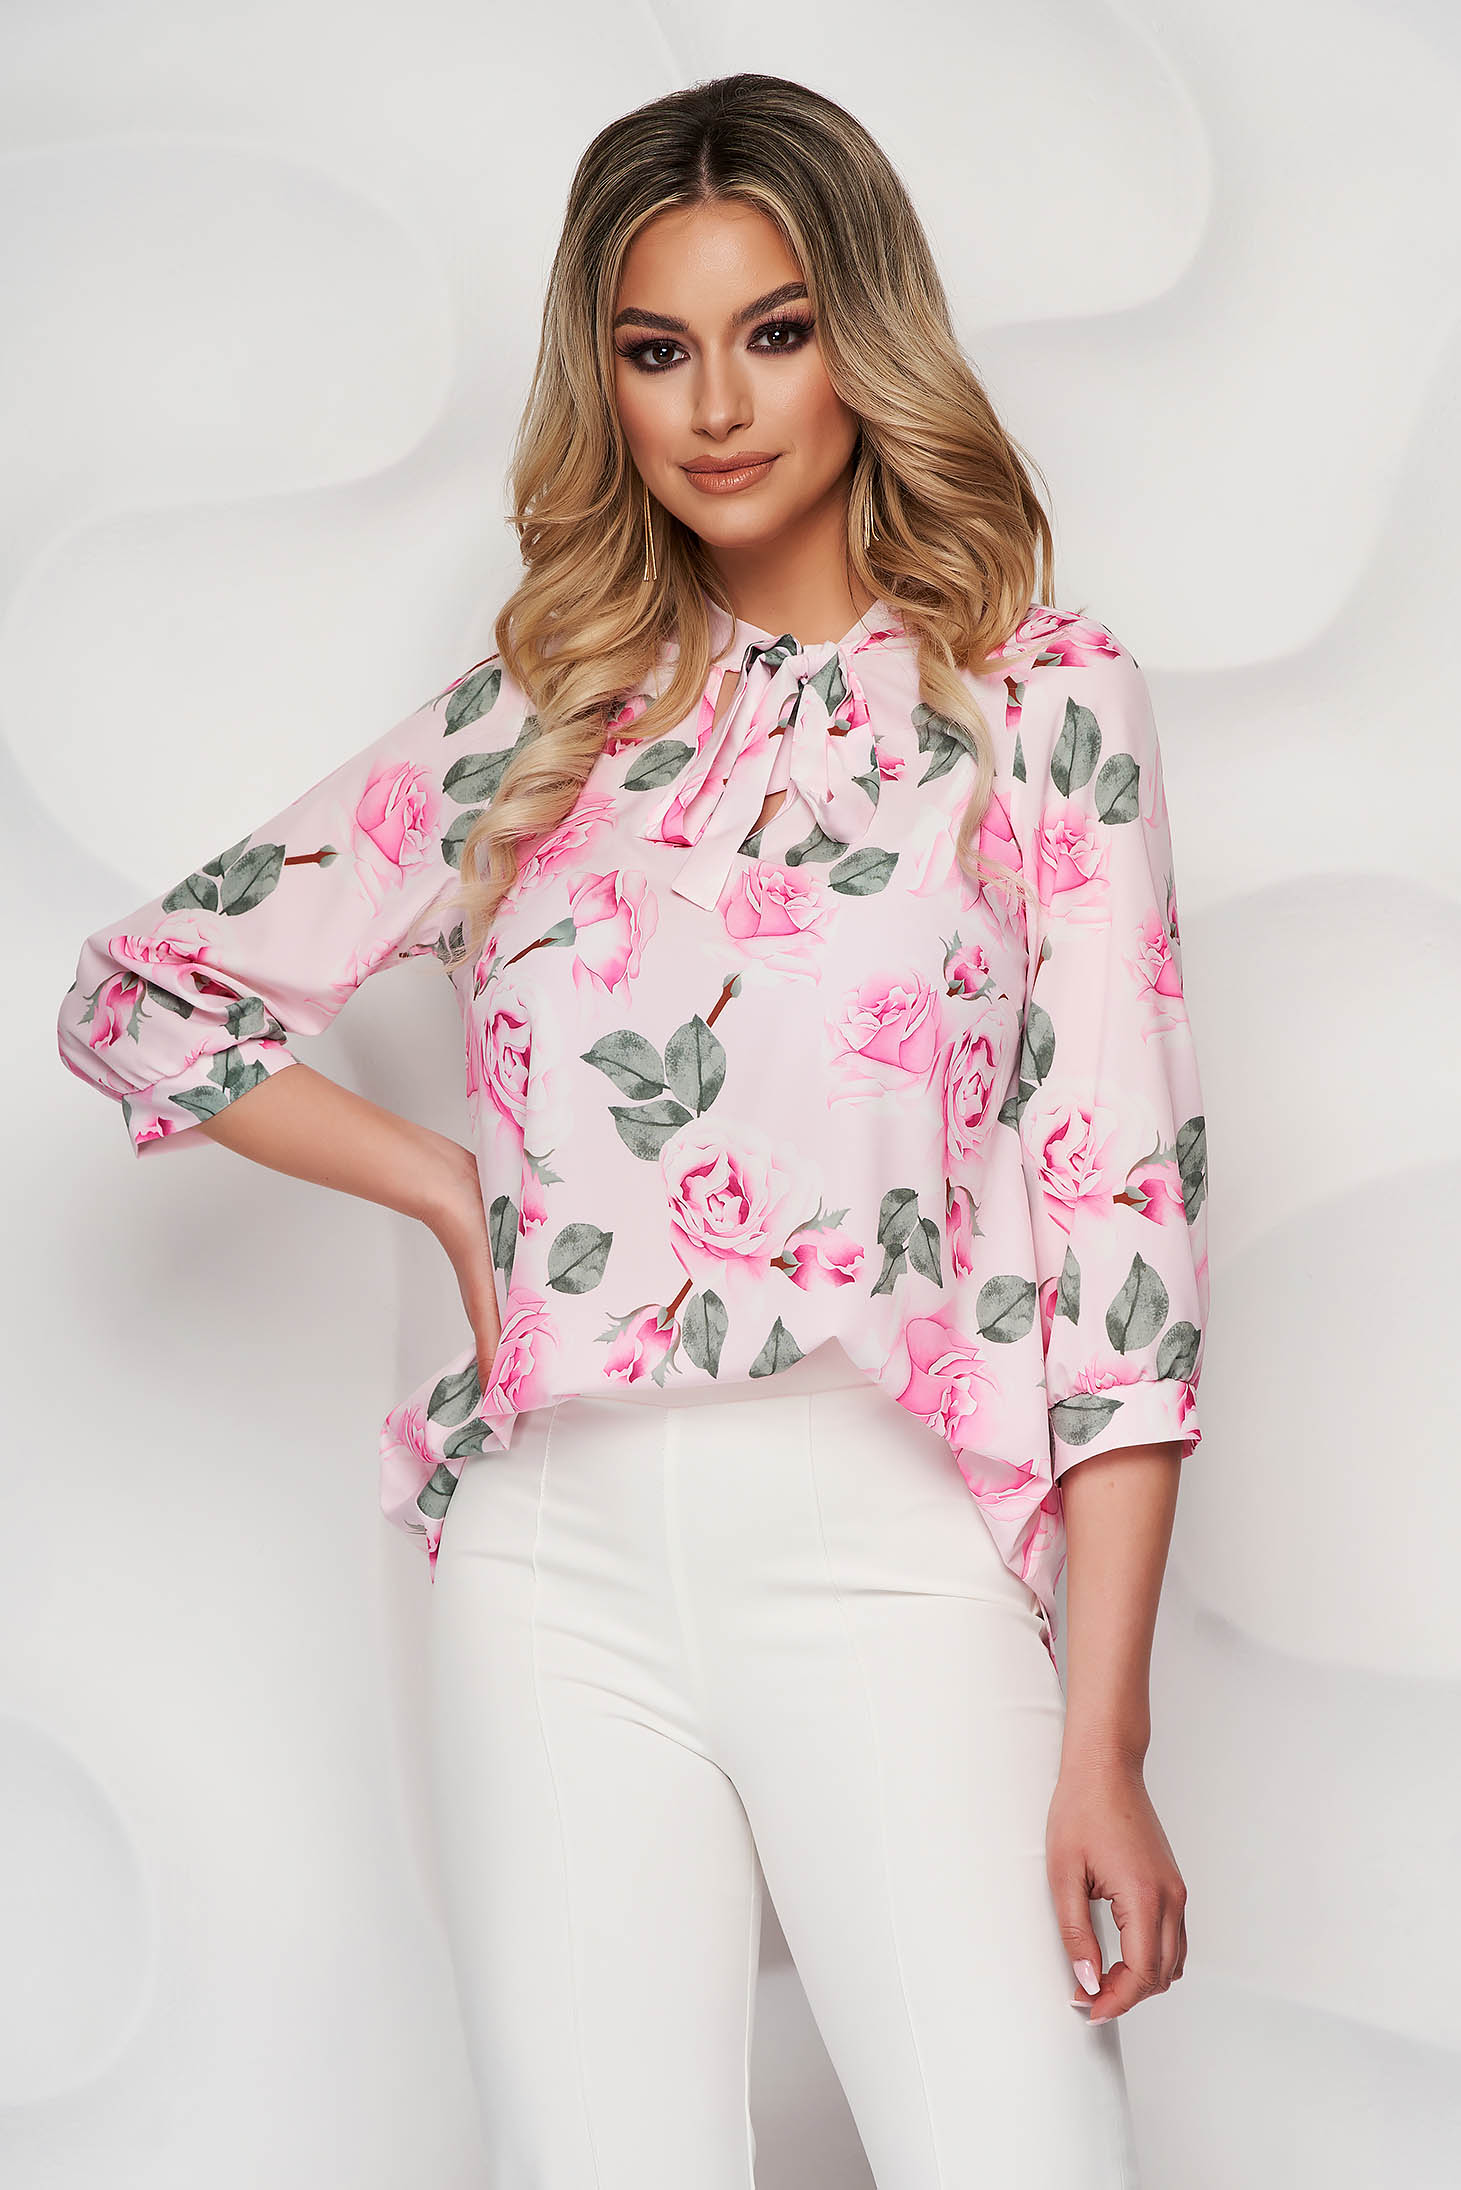 StarShinerS women`s blouse with floral print loose fit airy fabric office